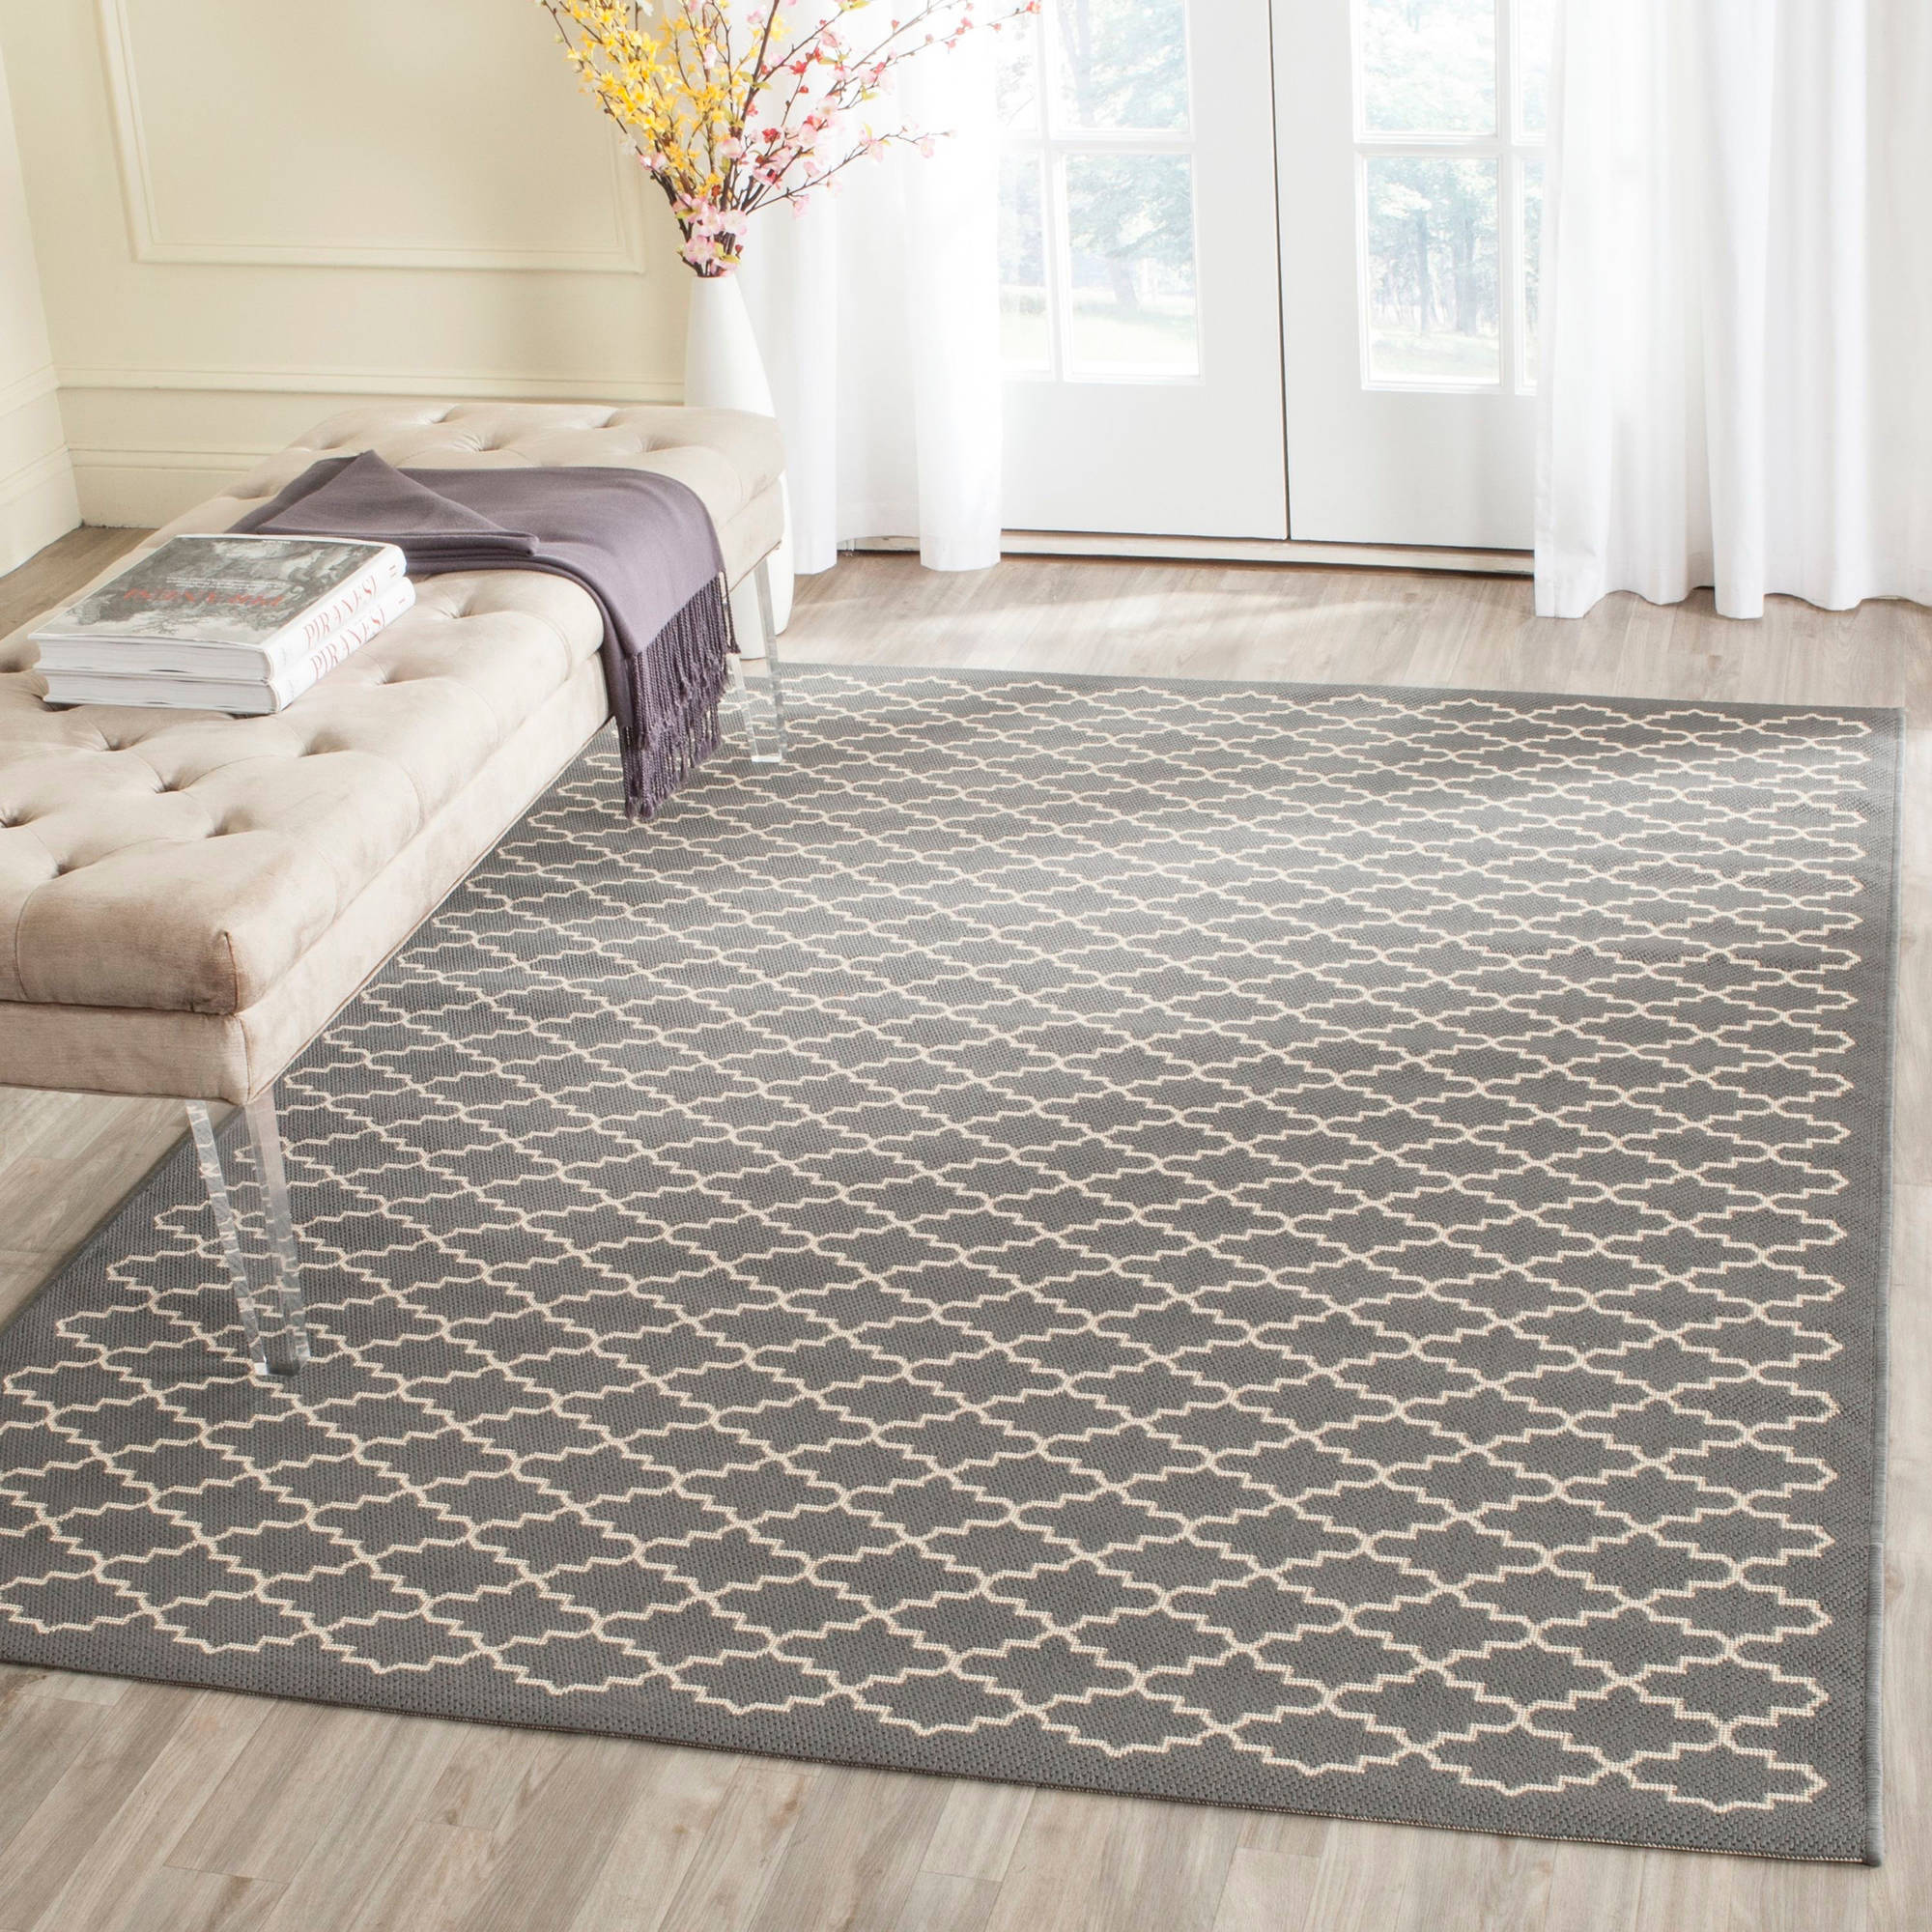 Safavieh Courtyard Hilbert Power-Loomed Indoor/Outdoor Area Rug or Runner